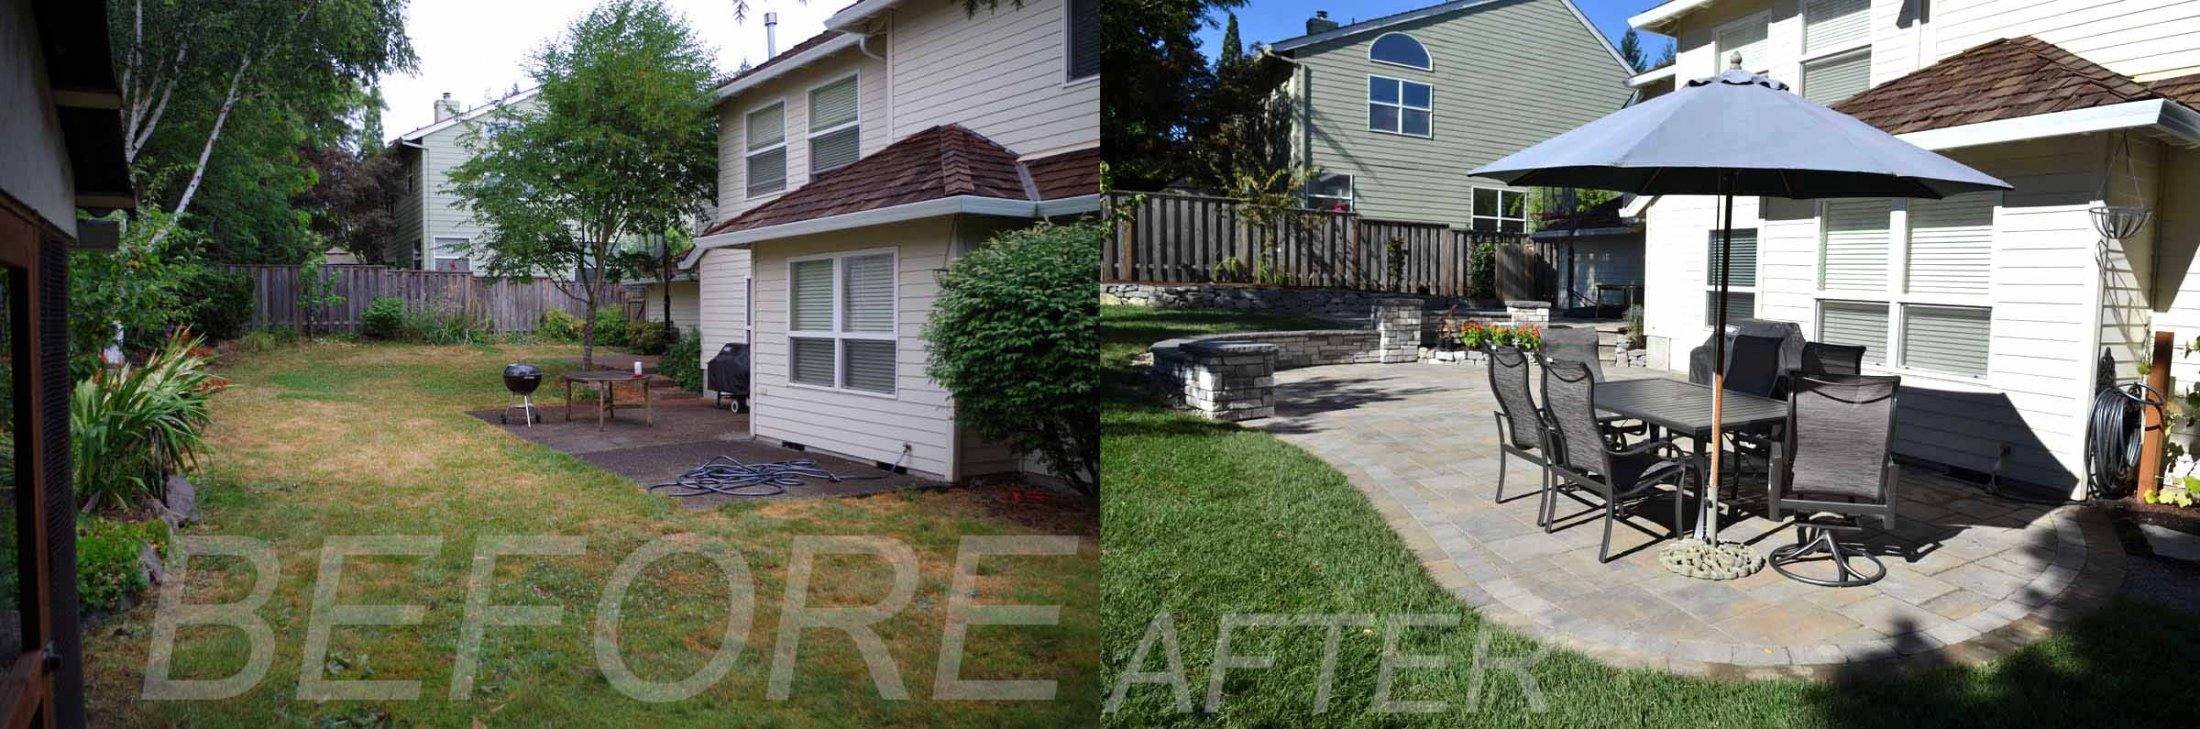 Before-after-moret-project-summer-2015 001